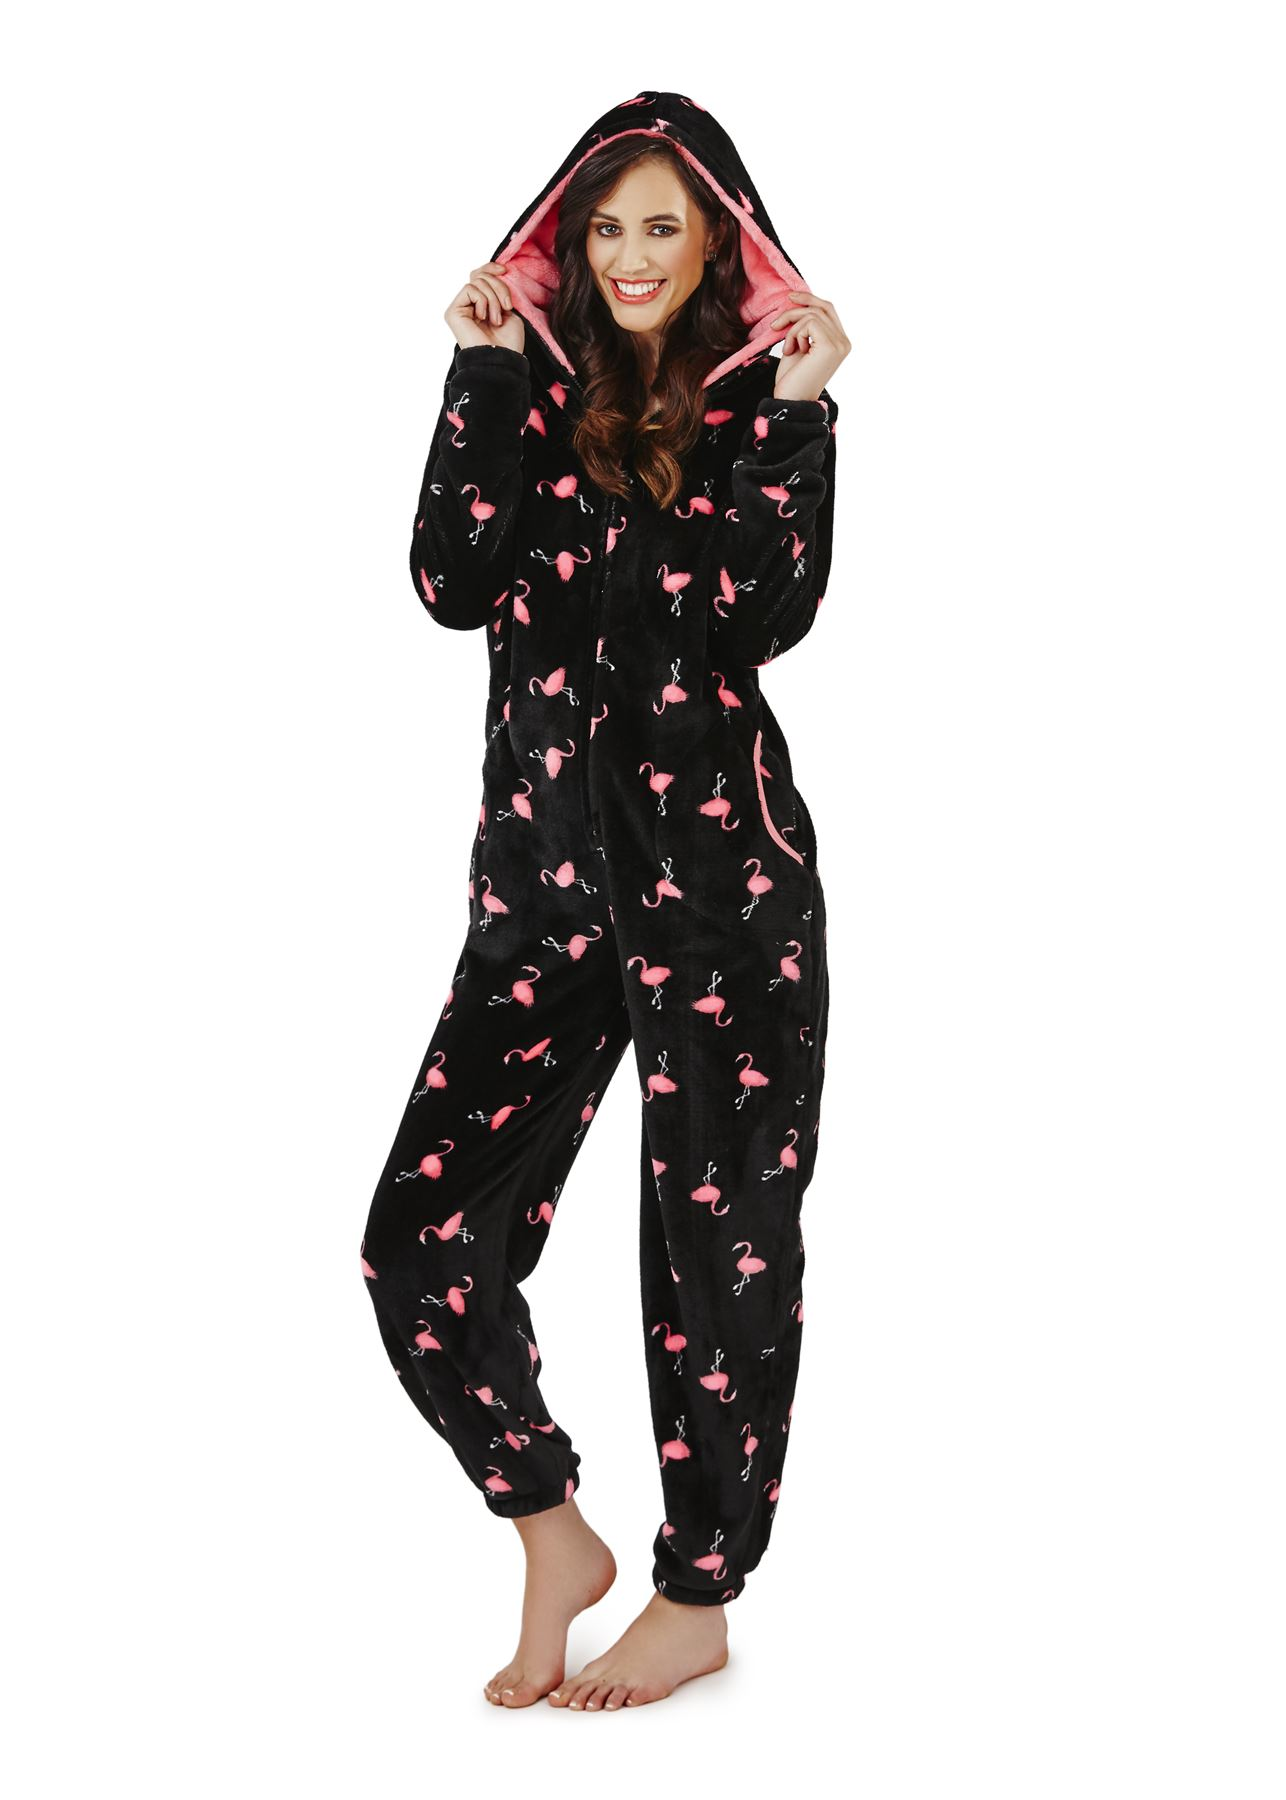 Jumpsuits and onesies made by the experts in loungewear with a focus on unisex styles. Our onesies feature bold colors, prints, and patches. Whether you're seeking a cozy jumpsuit or a unique style, we always pioneer comfort and push the boundaries.